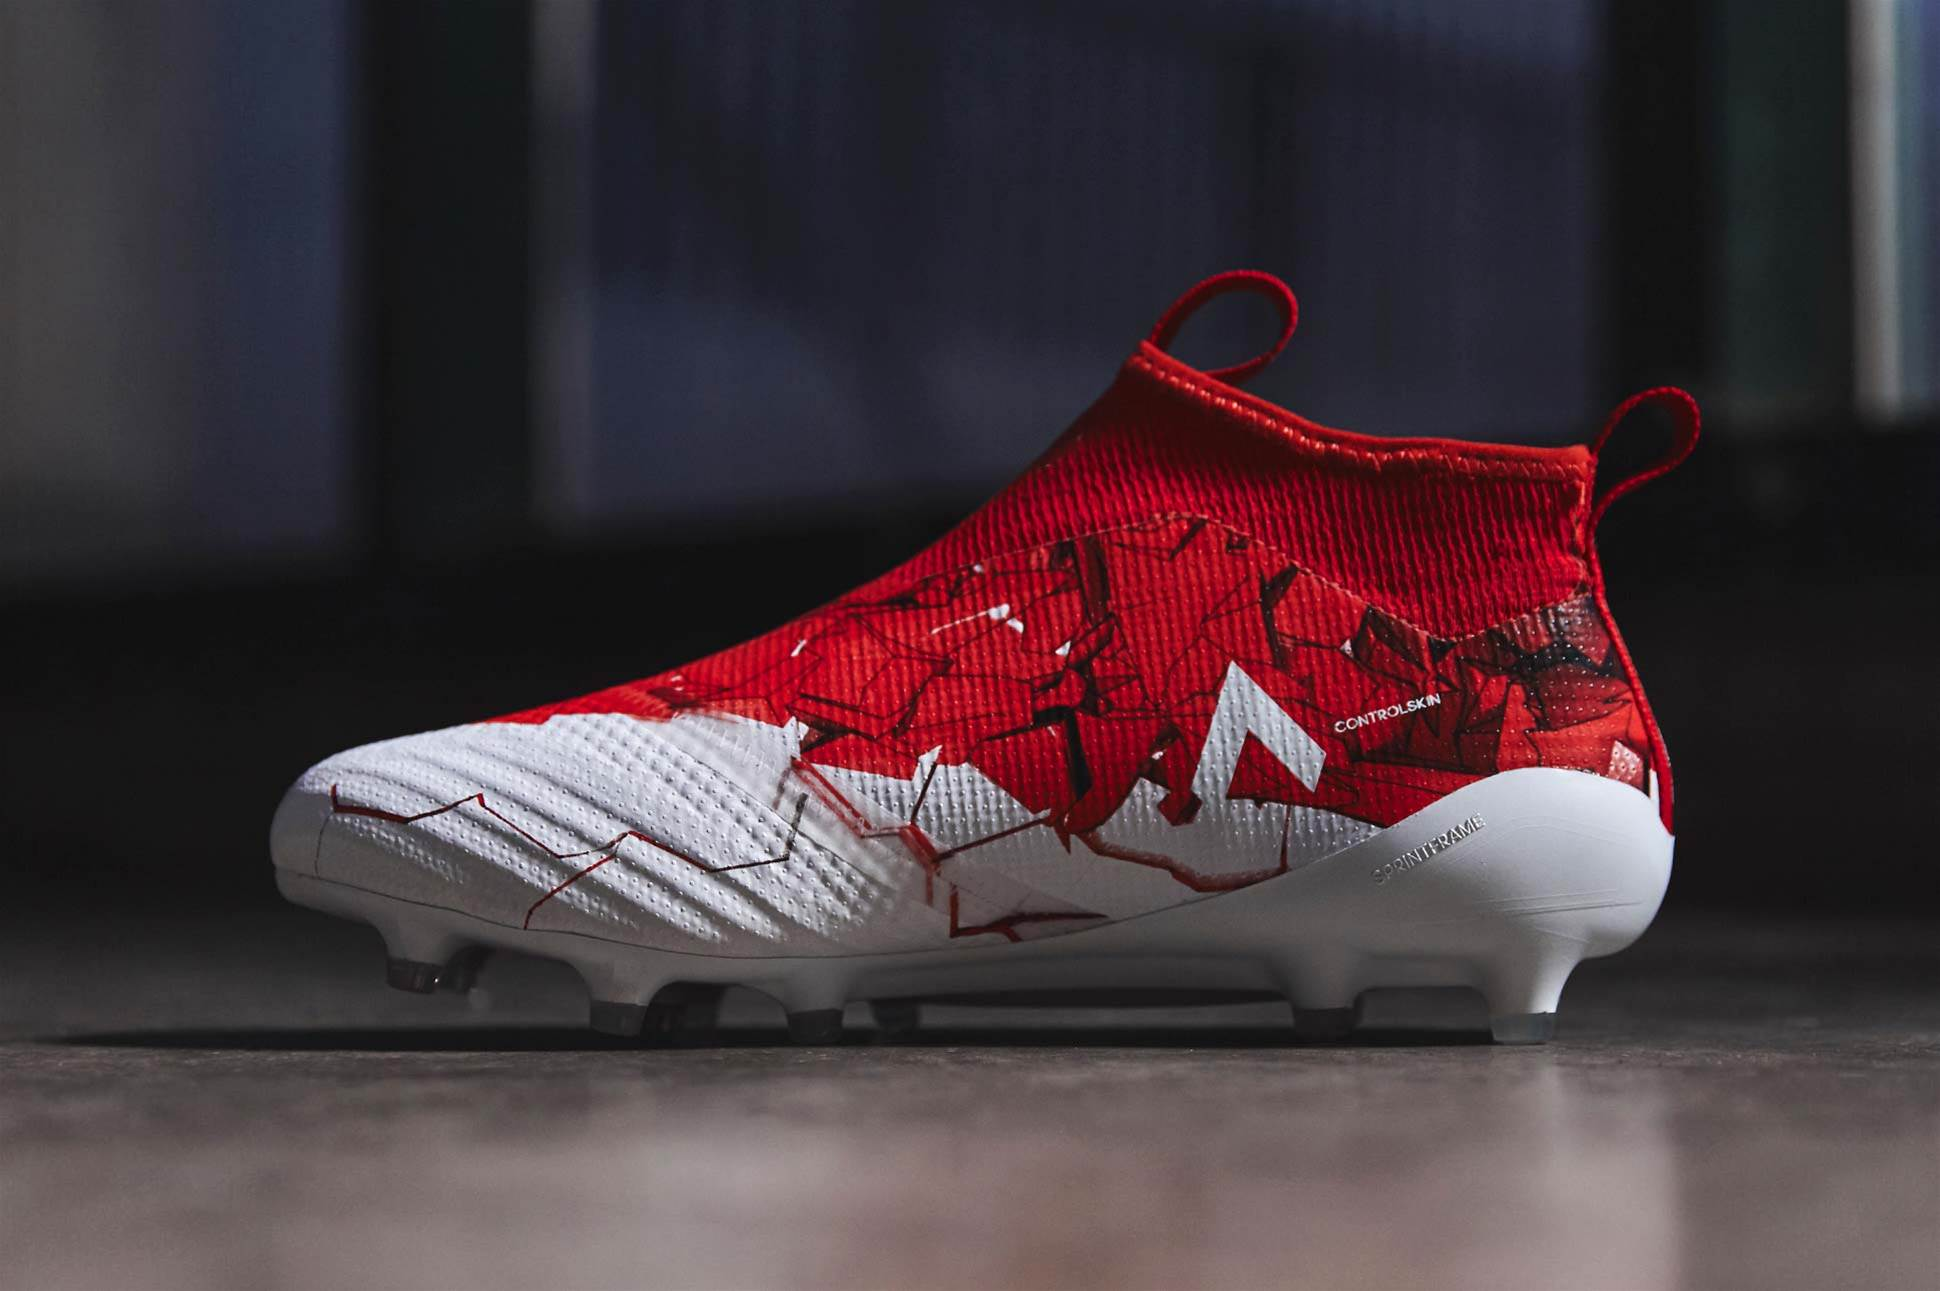 taking on a red and white colour scheme with frantic graphics the adidas ace 17+ purecontrol drops i